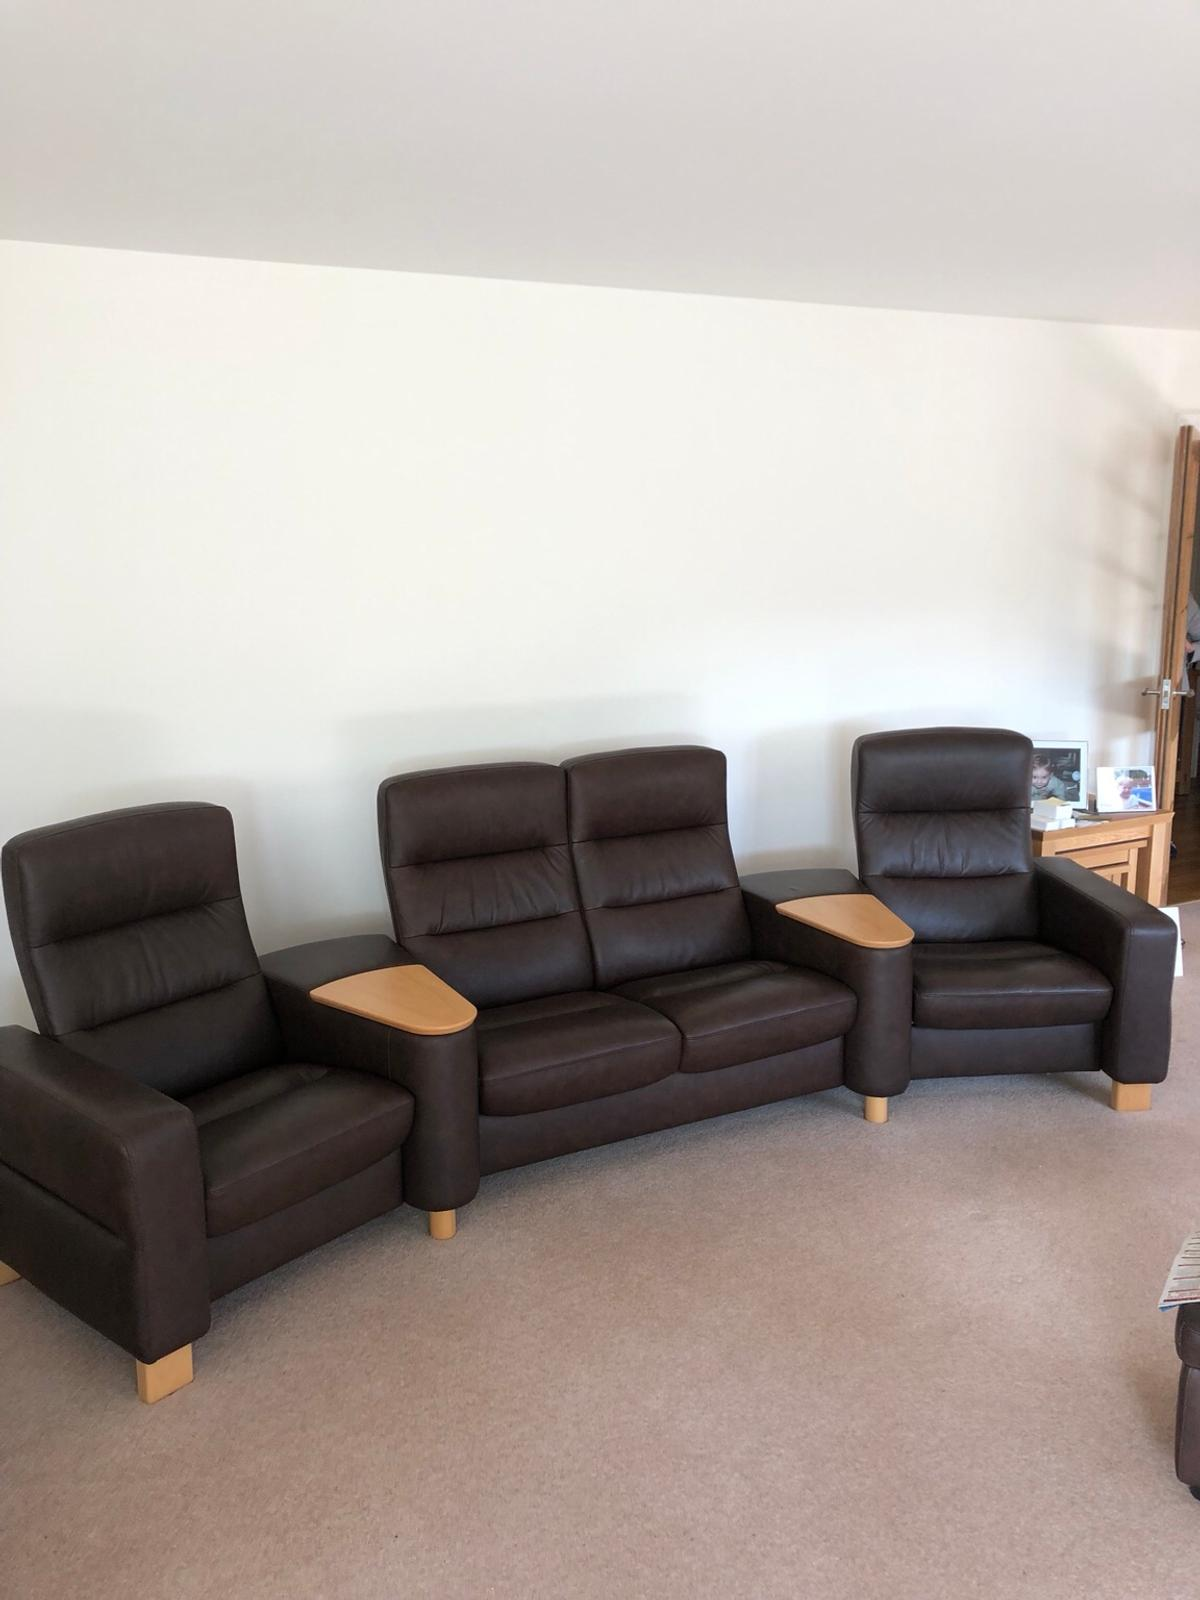 Leather Sofa From Furniture Village